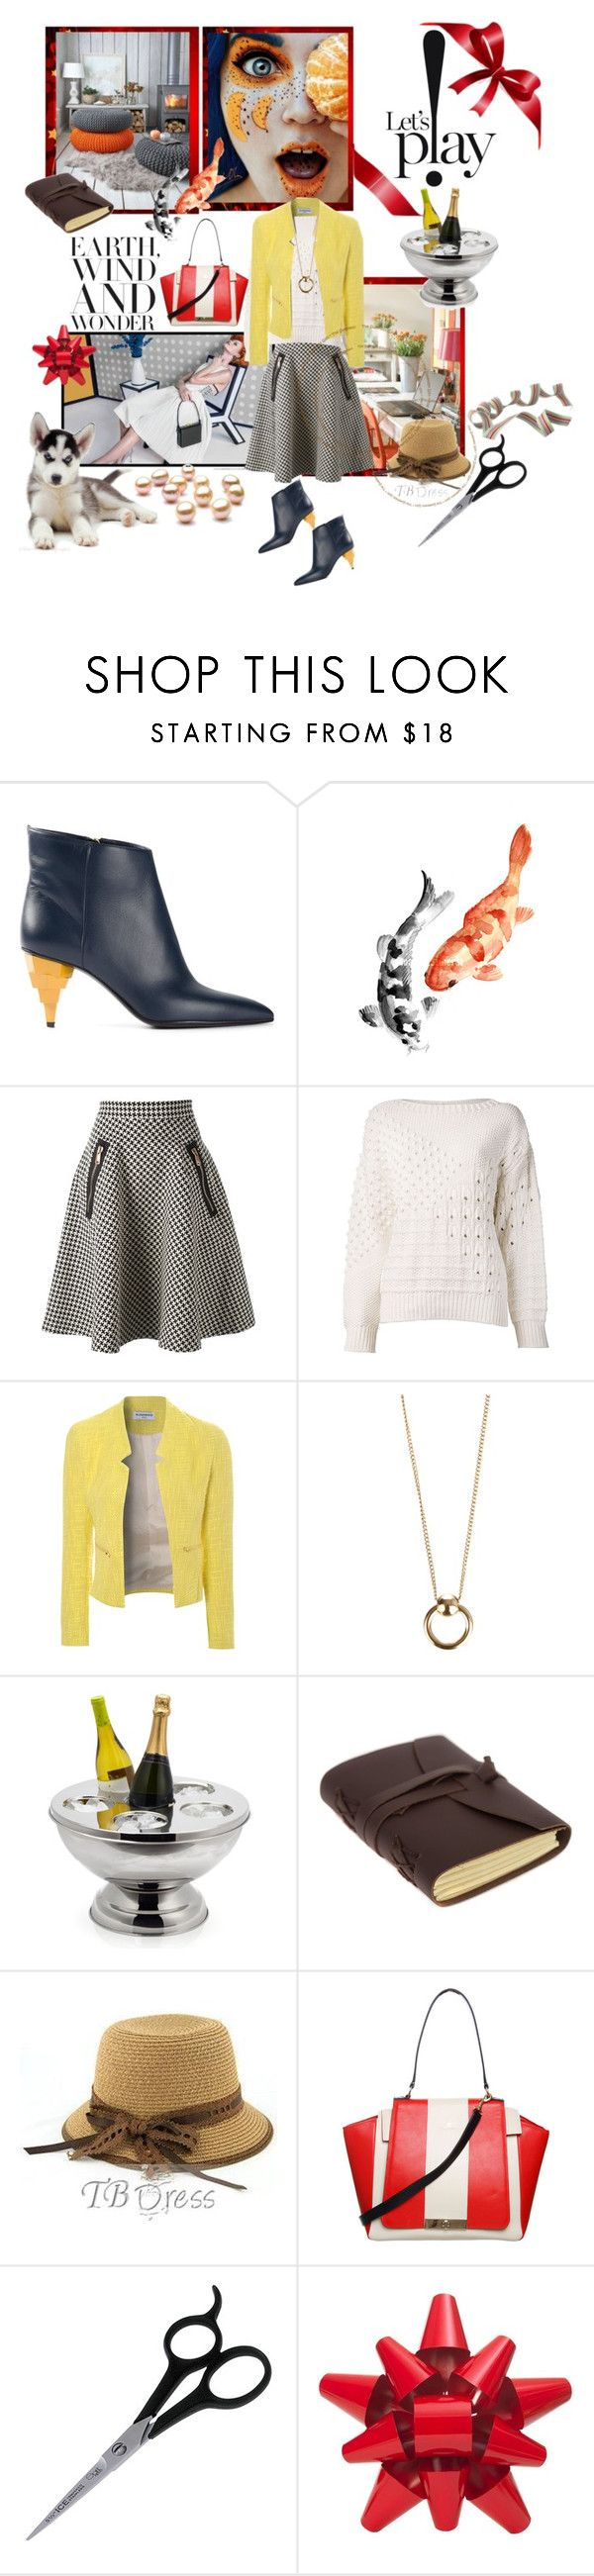 """""""Play TIme"""" by phoebesnayer ❤ liked on Polyvore featuring CO, Vionnet, Coast + Weber + Ahaus, Closed, True Decadence, Luv Aj, Hudson Jeans, Milli Millu, Tweezerman and Martha Stewart"""